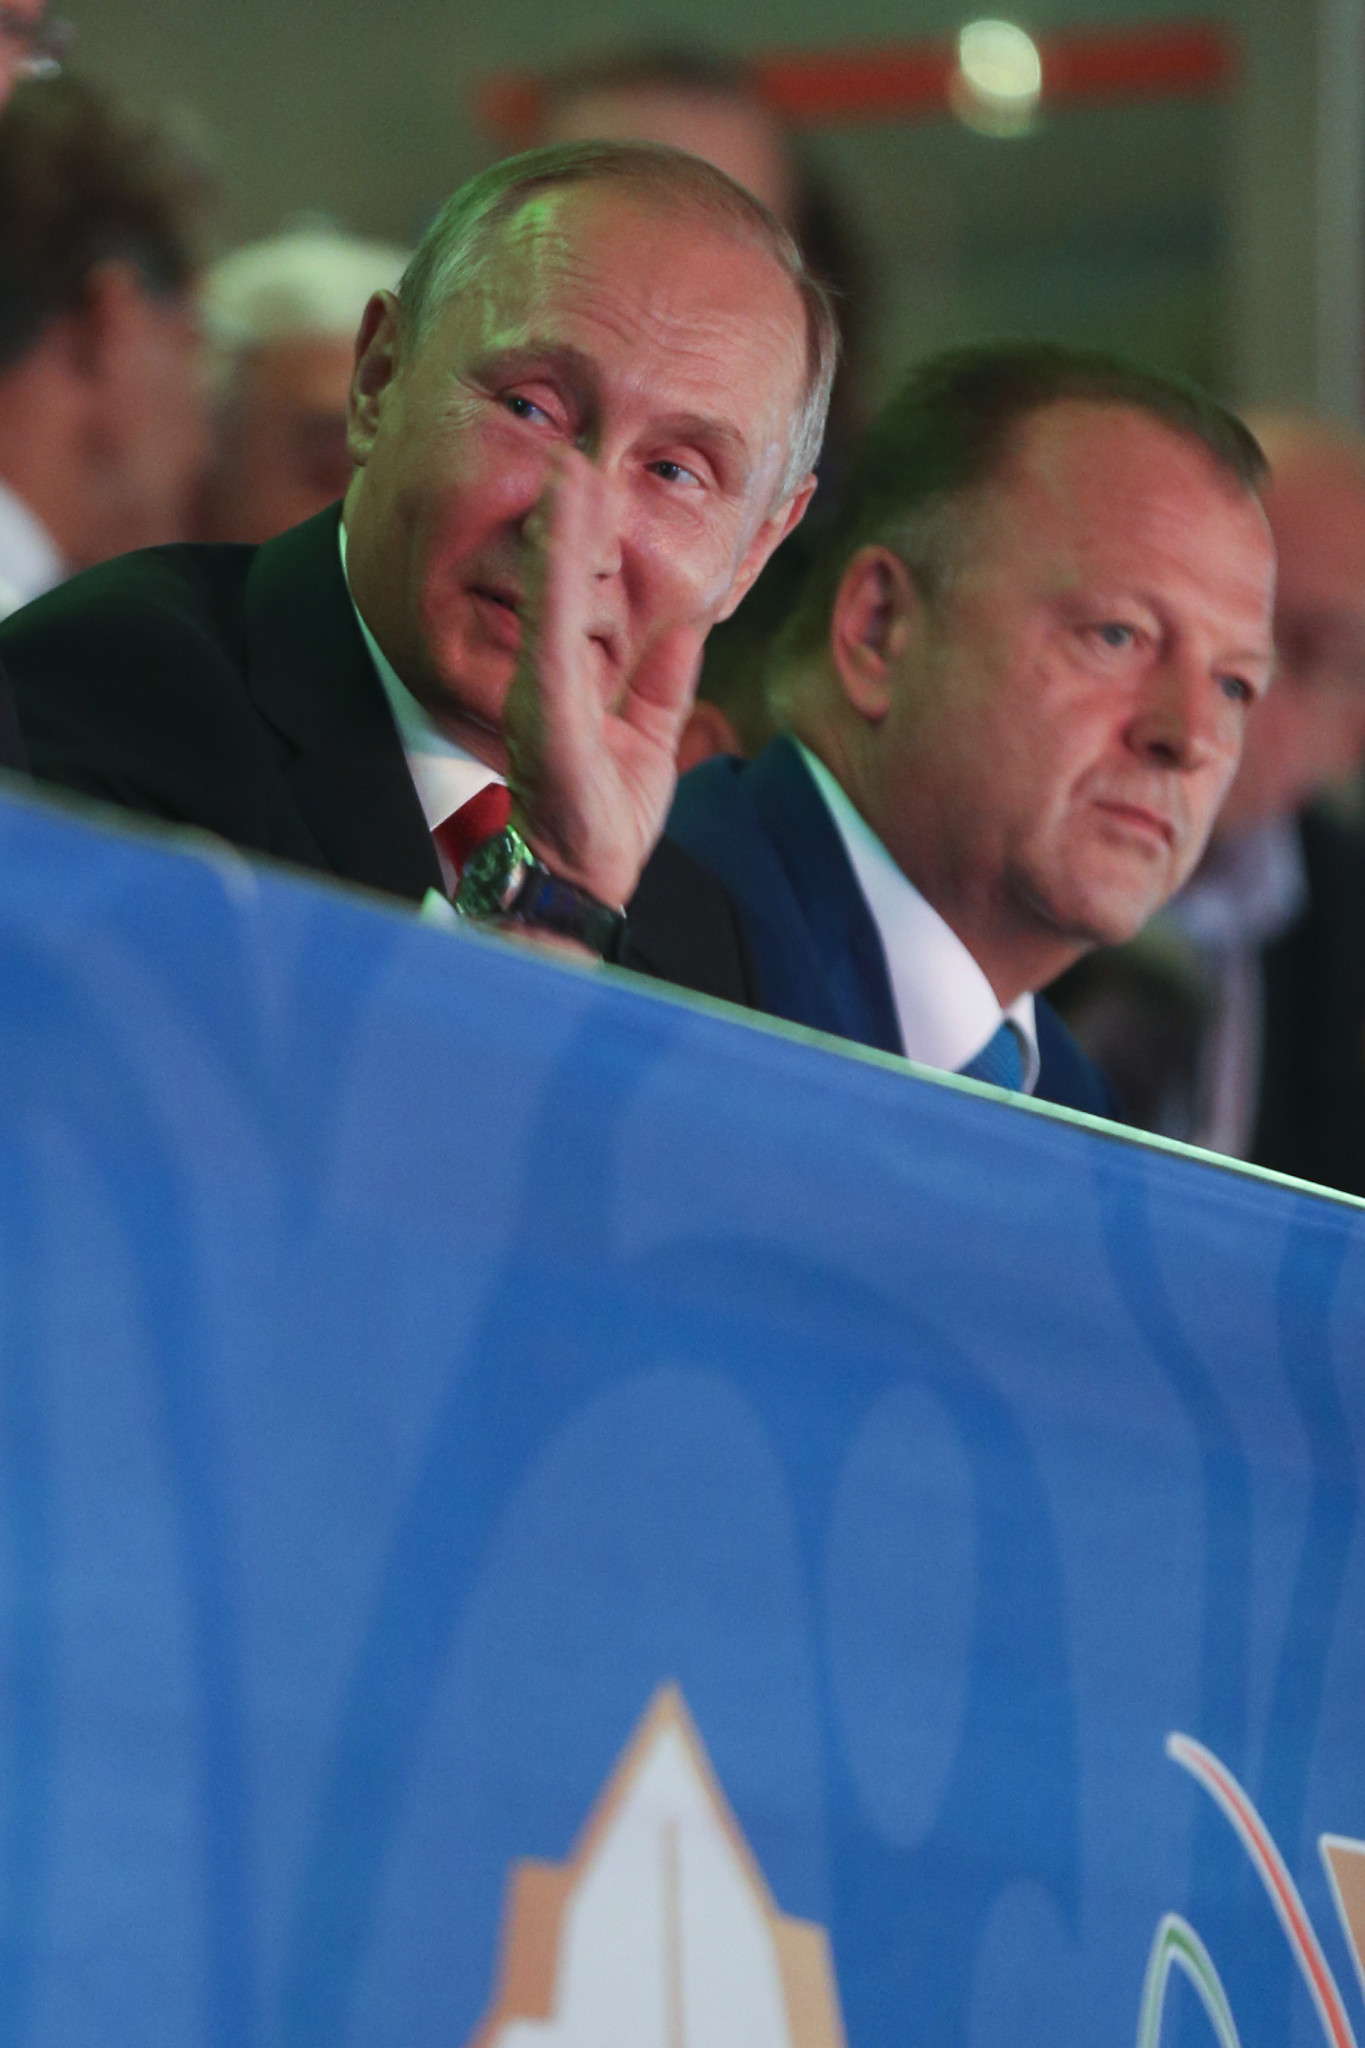 Russian President Vladimir Putin, left, waves next to Marius Vizer, head of the International Judo Federation, right, during the World Championships in Budapest ©Getty Images